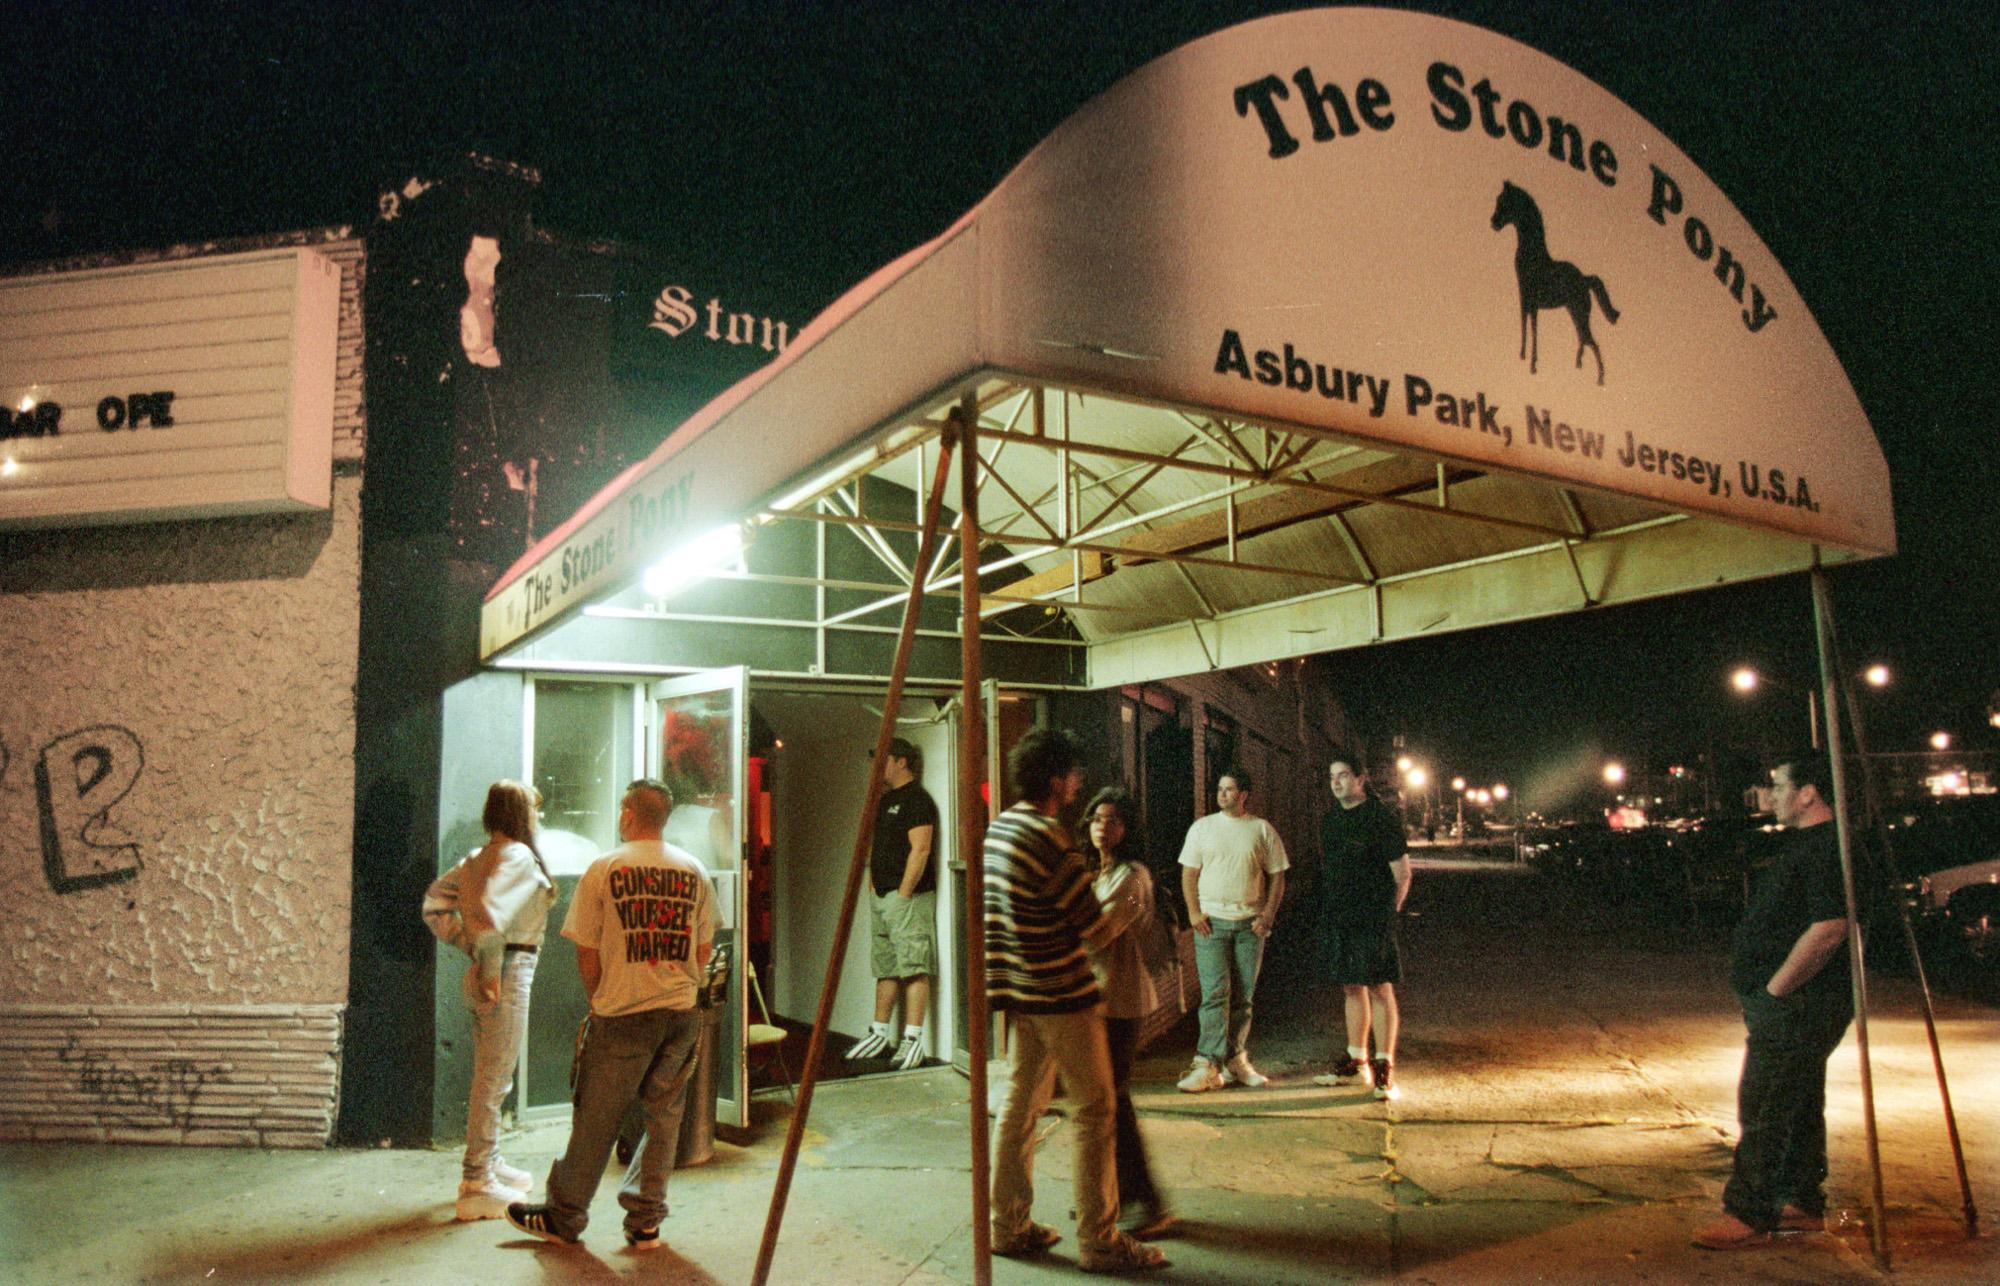 <strong>The Stone Pony - Asbury Park, NJ</strong><br><br>Replacing popular restaurant Mrs. Jay's in Asbury Park, New Jersey, The Stone Pony opened its doors on February 8, 1974. The venue is one of the famous launching pads for Bruce Springsteen and the E Street Band, along with a host of other Jersey musical luminaries.<br><br>(AP Photo/Mike Derer, FILE)